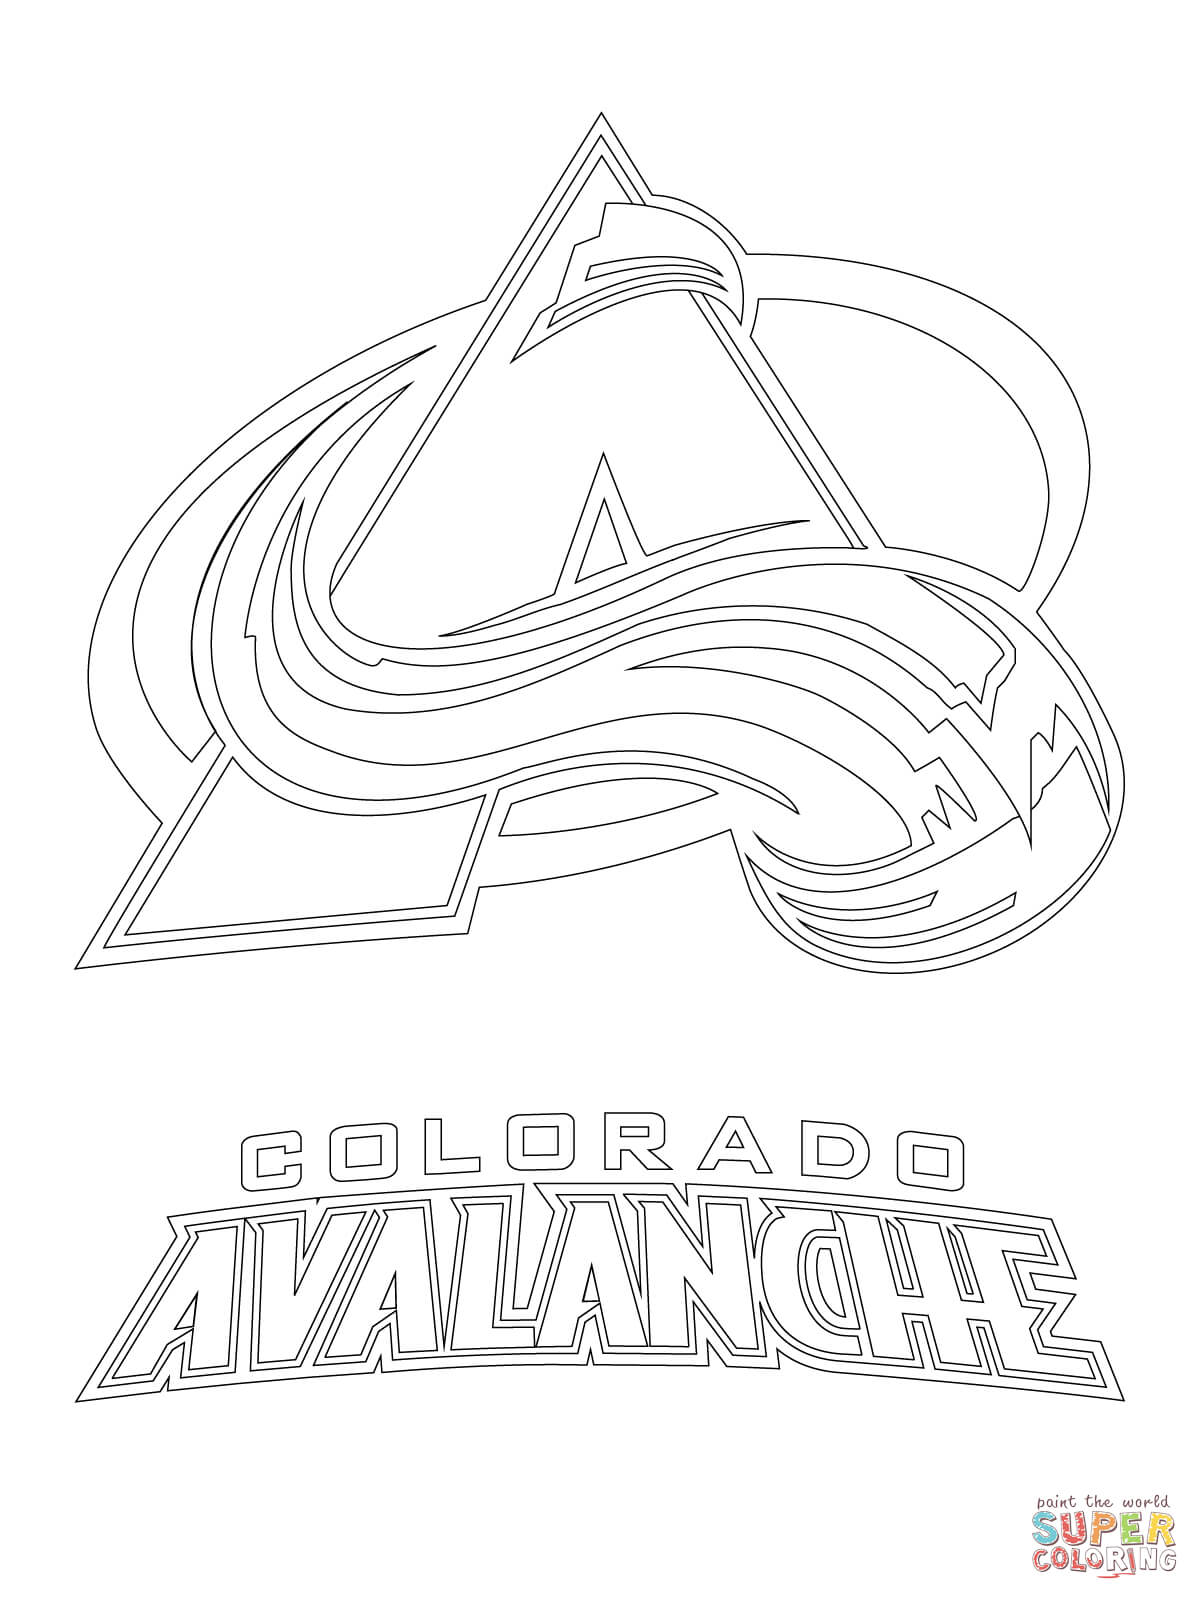 Avalanche coloring #8, Download drawings